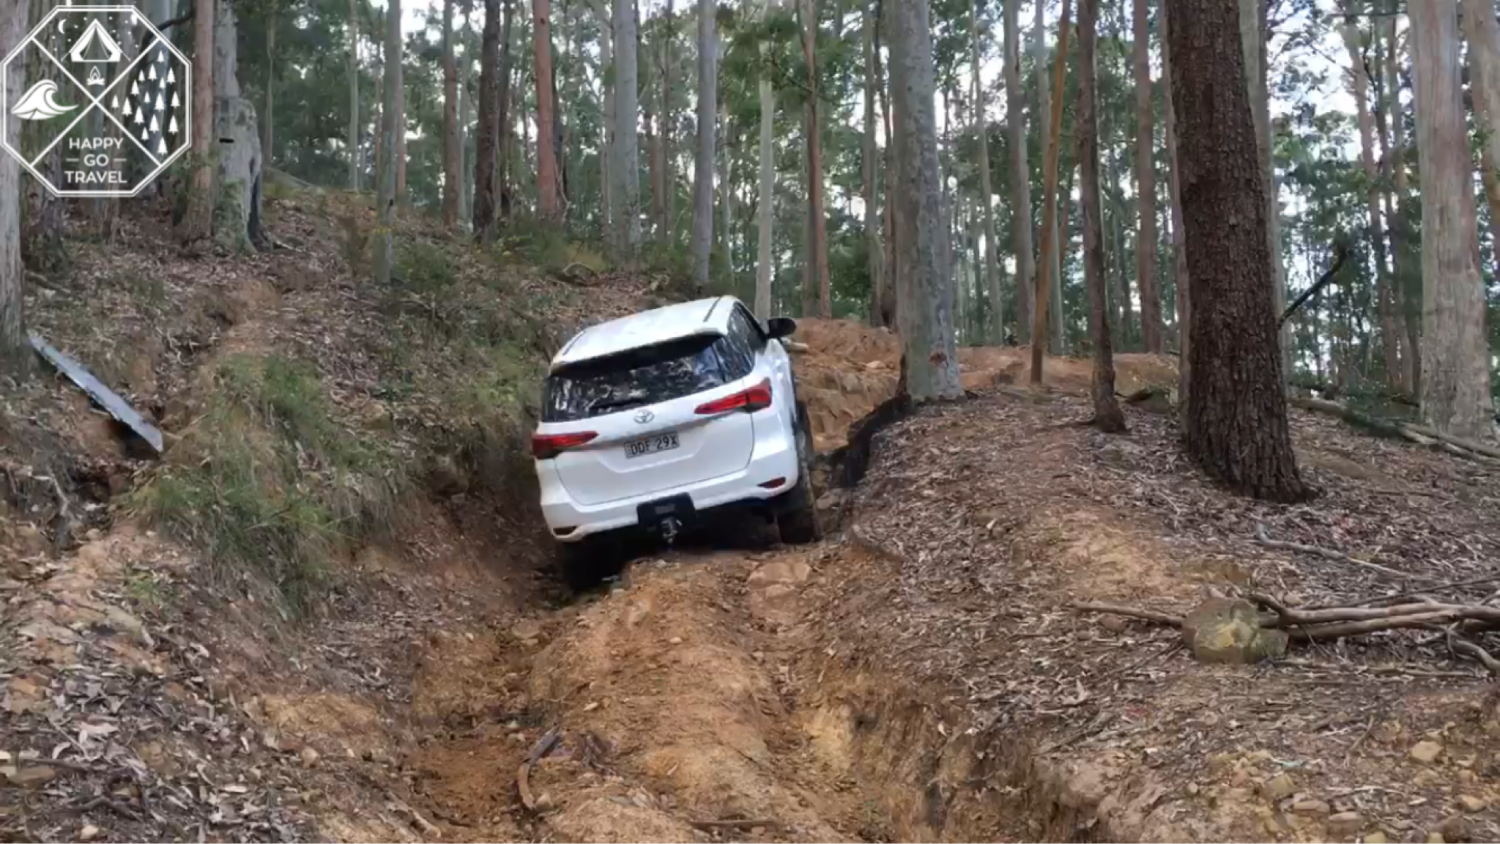 Toyota Fortuner 4wding CTP80 track | Watagans 4x4 tracks